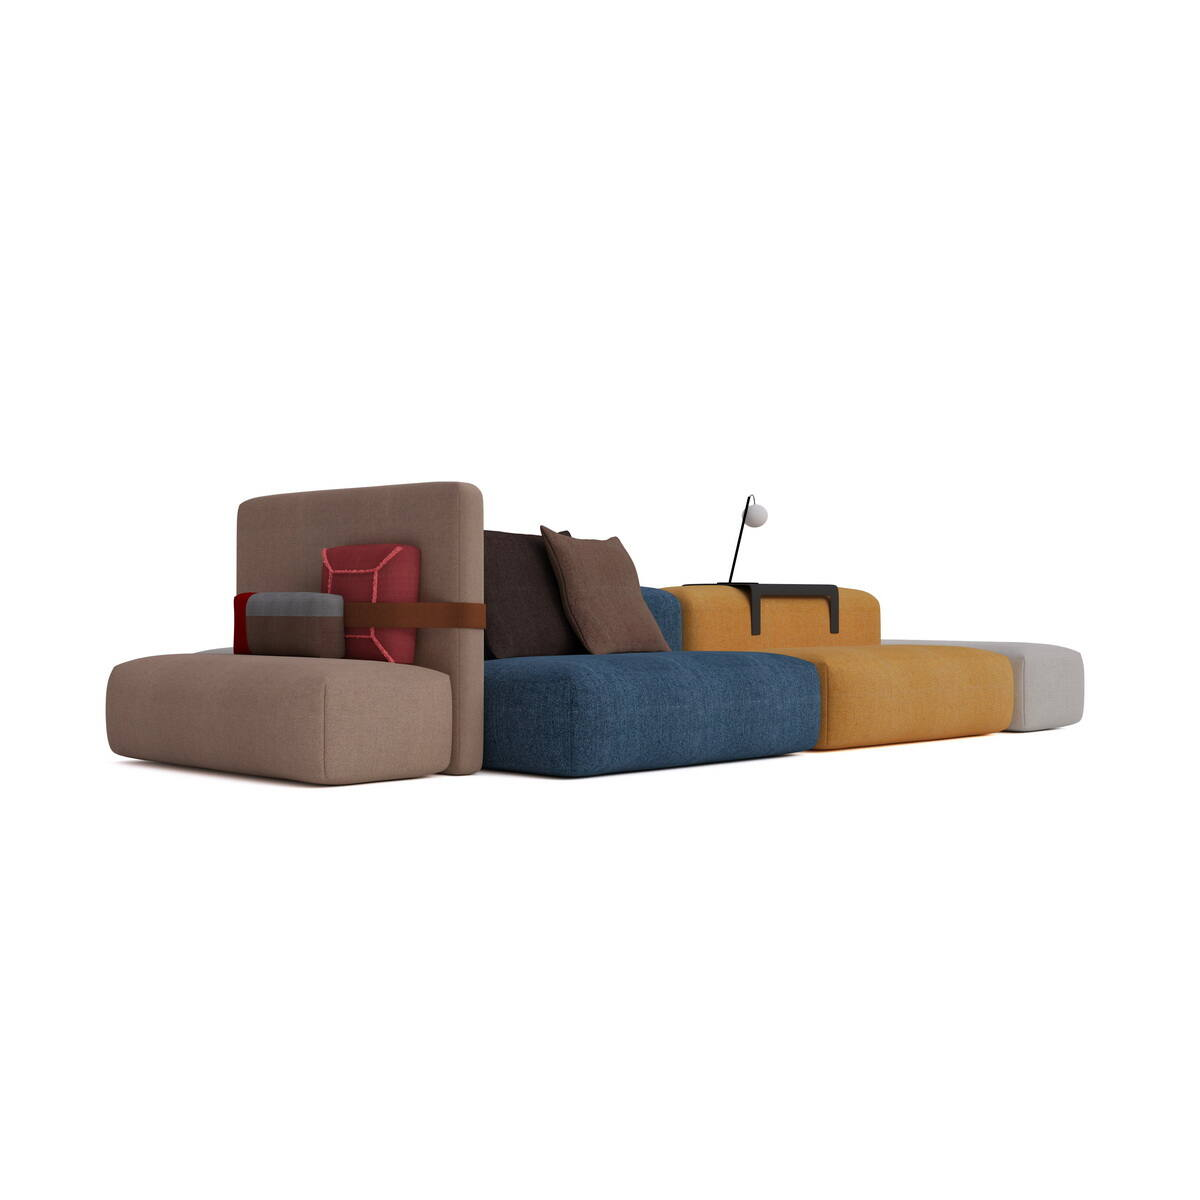 Hannabi Urban Nomad Sofa Box Model No 16 Box Hyperactive Hannabi Webshop